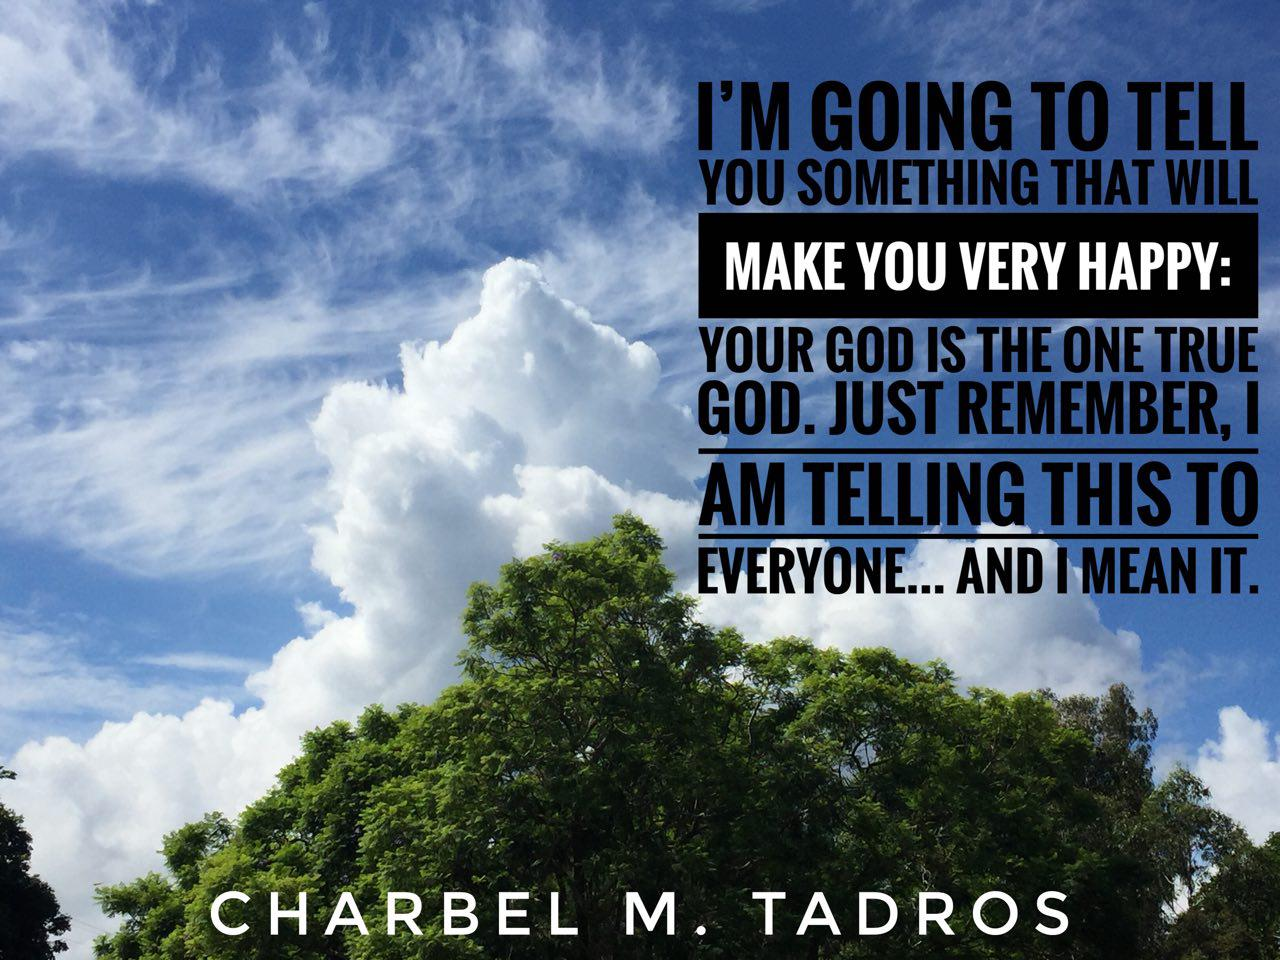 i'm going to tell you something that will make you very hapy: your god is the one true god. Just remember... I am telling this to everyone... and i mean it